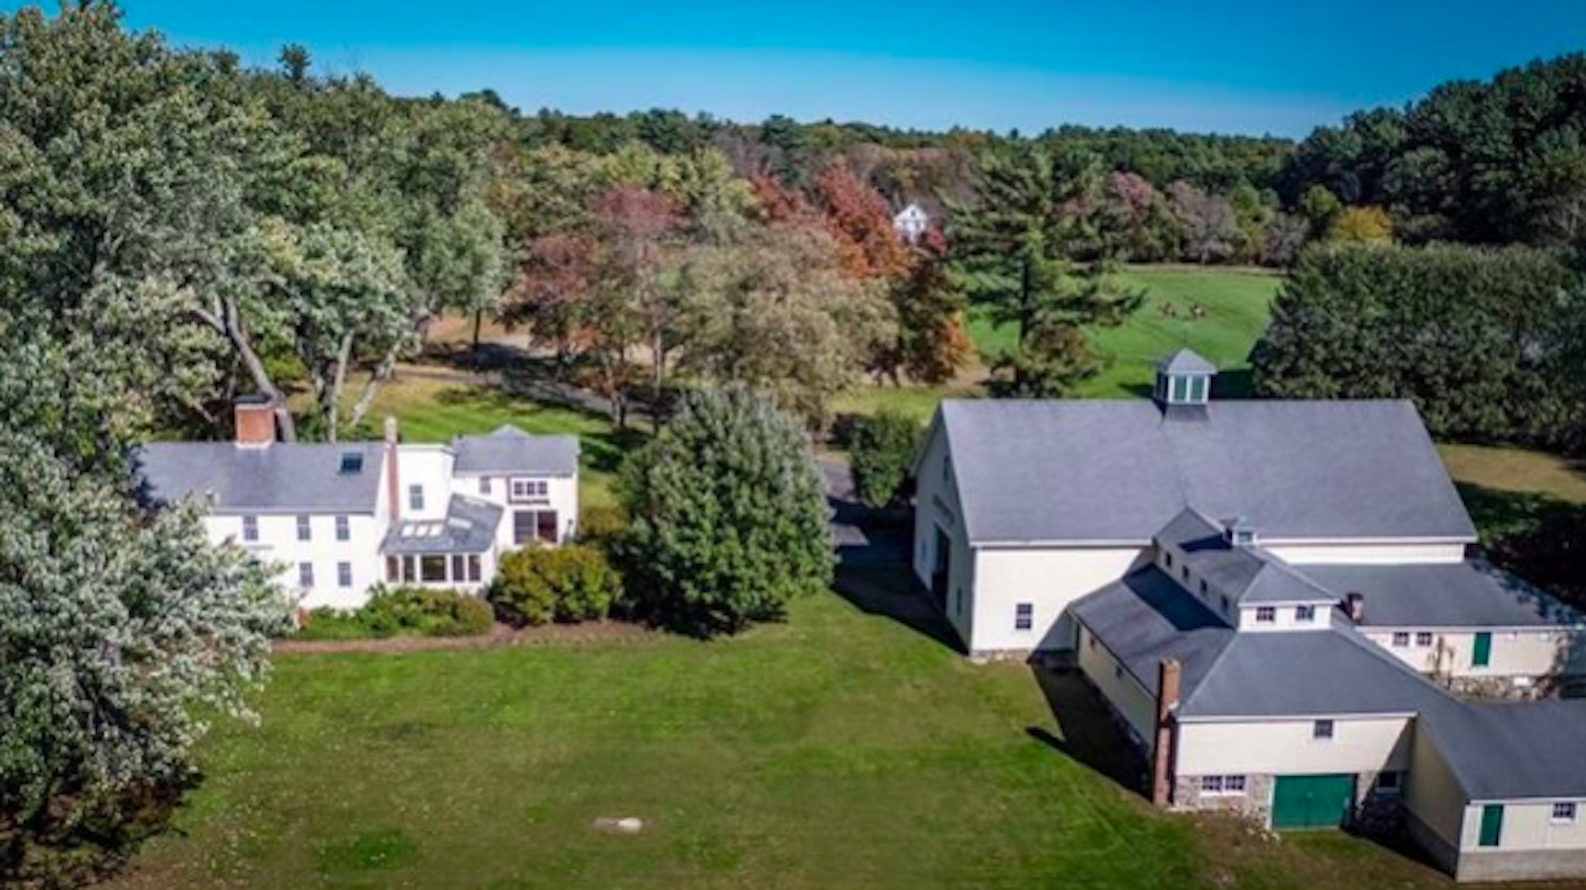 Luxury Home of the Week: Renovated Concord farmhouse on 12-plus acres for $8.7 million